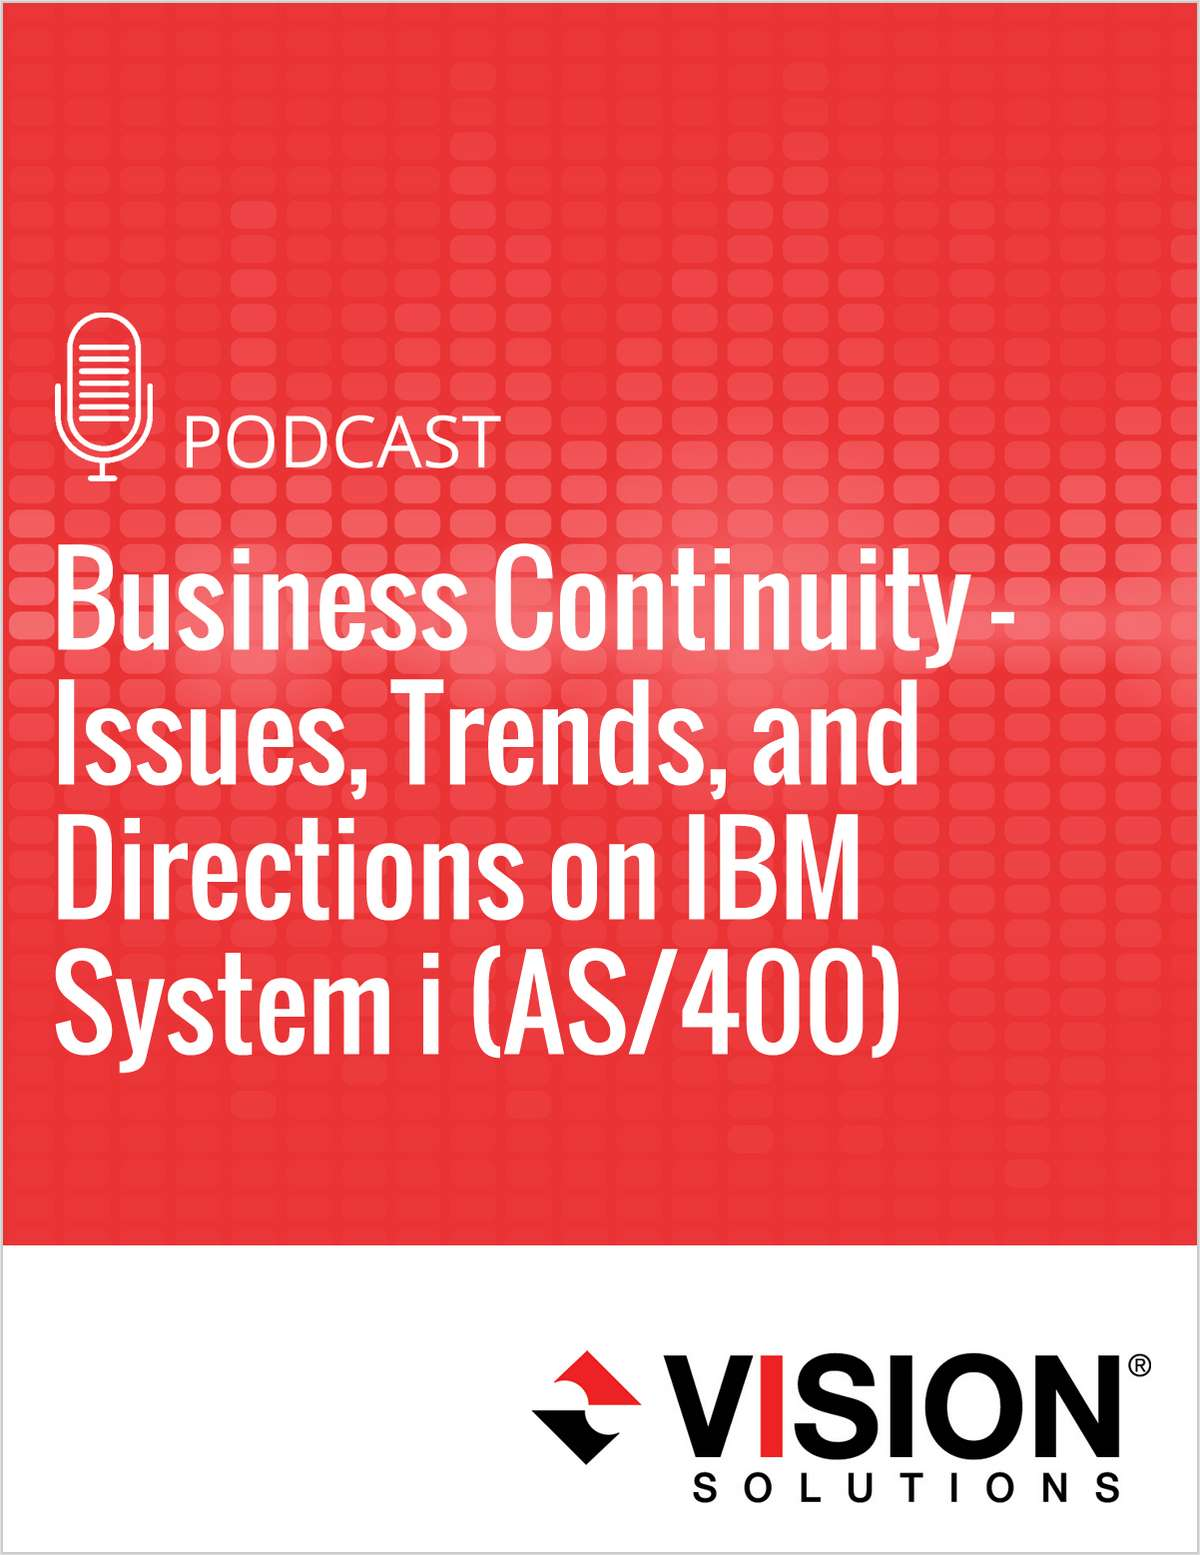 Business Continuity - Issues, Trends, and Directions on IBM System i (AS/400)